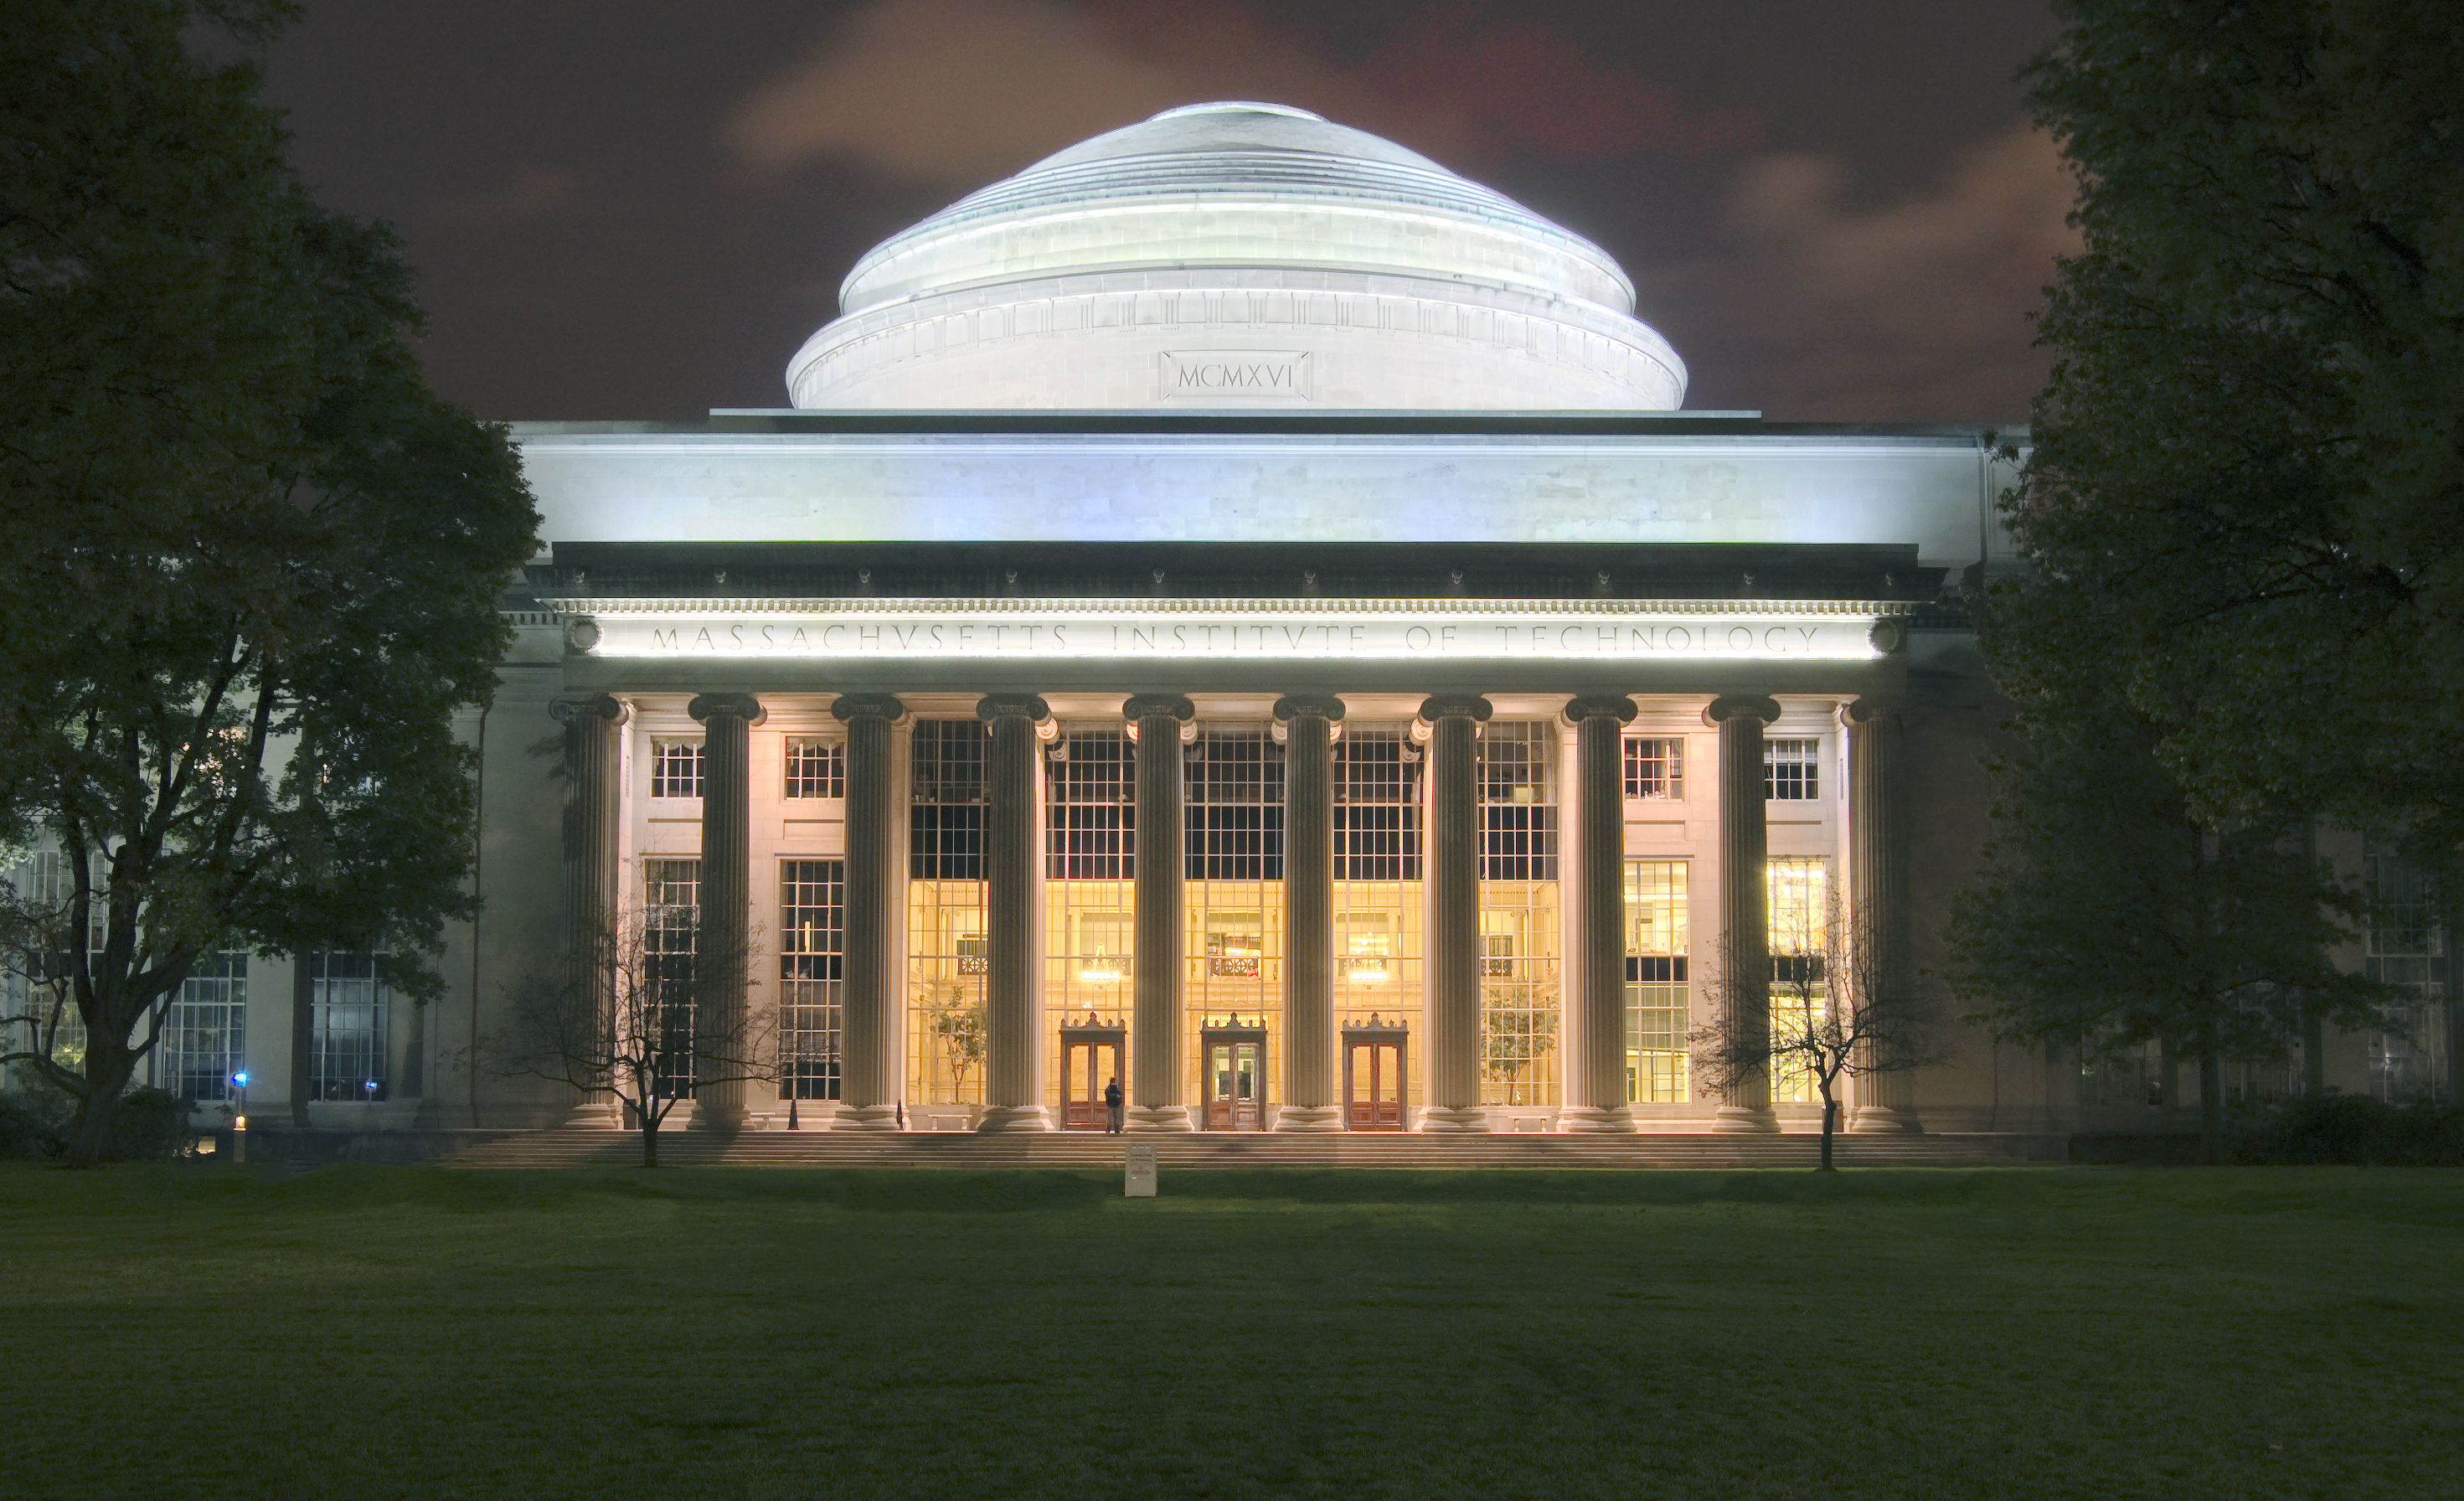 MIT Dome at night